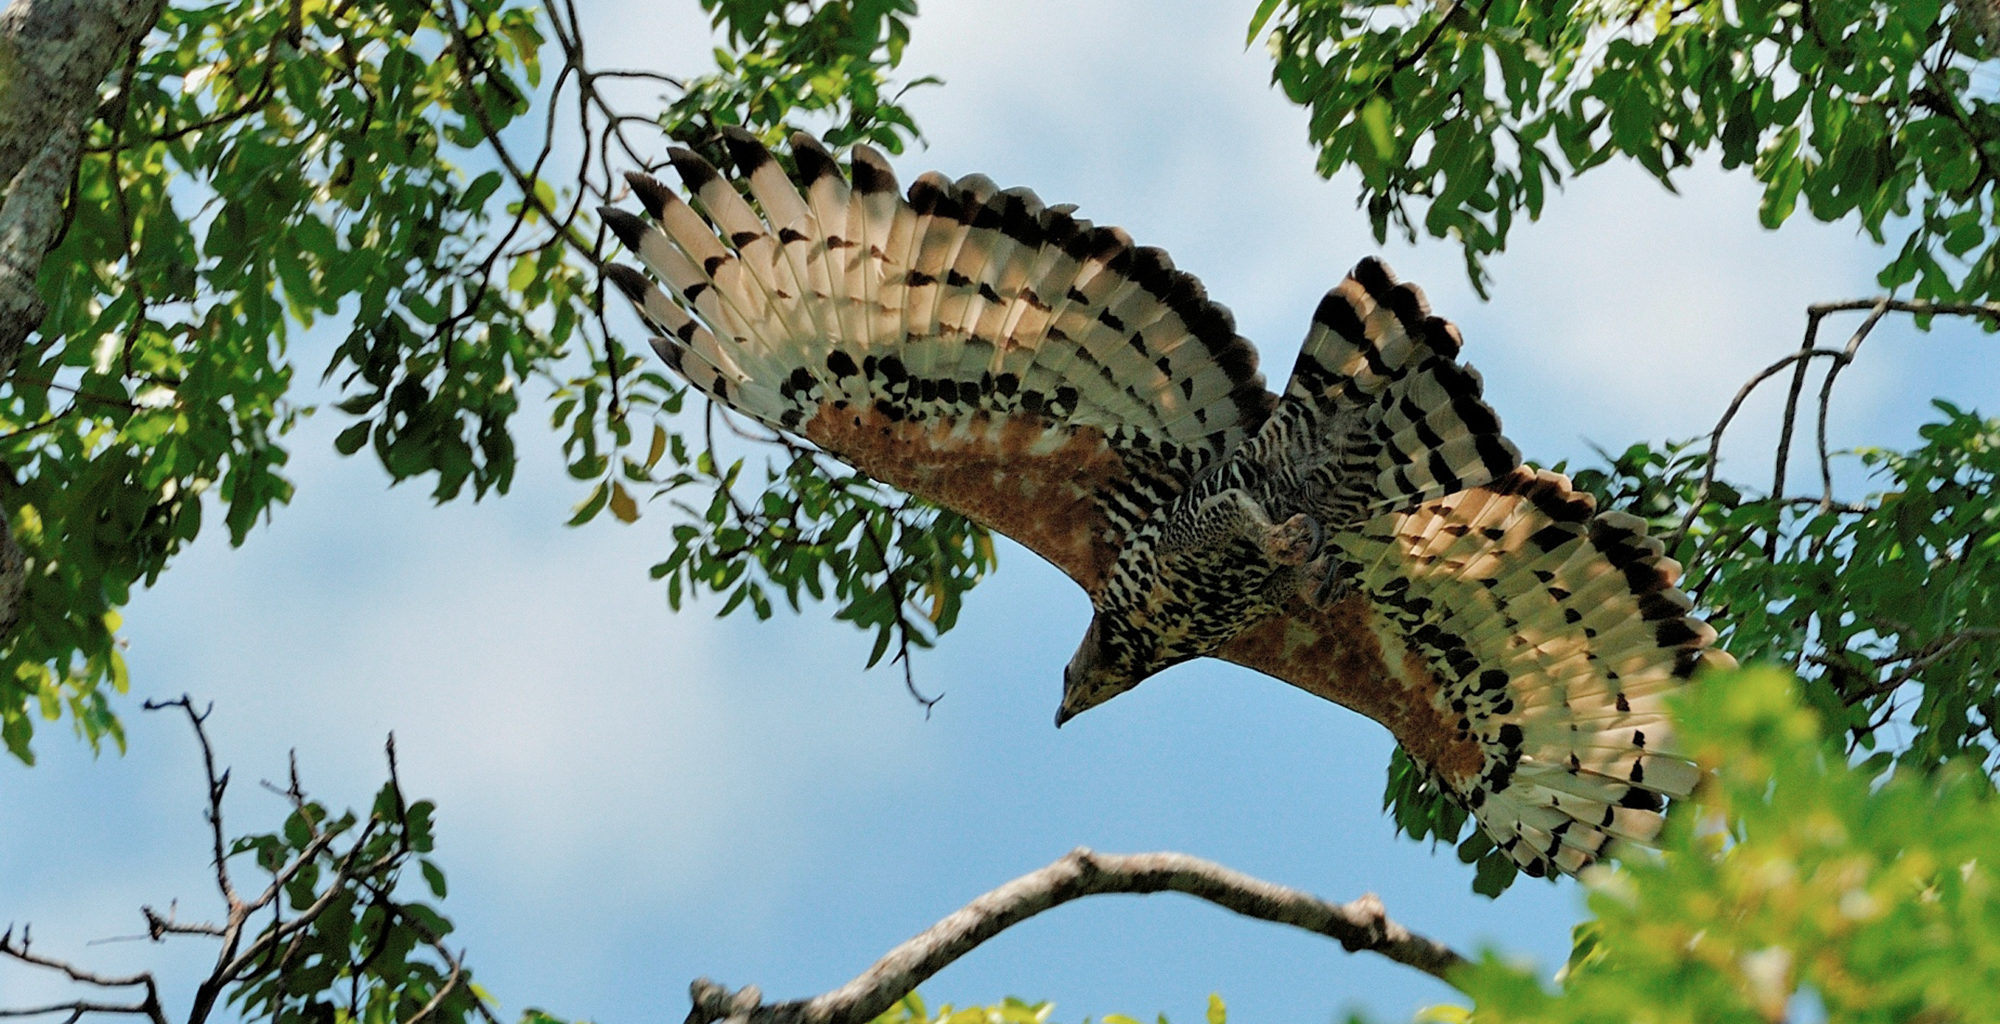 Zambia-Kasanka-National-Park-African-Crowned-Eagle